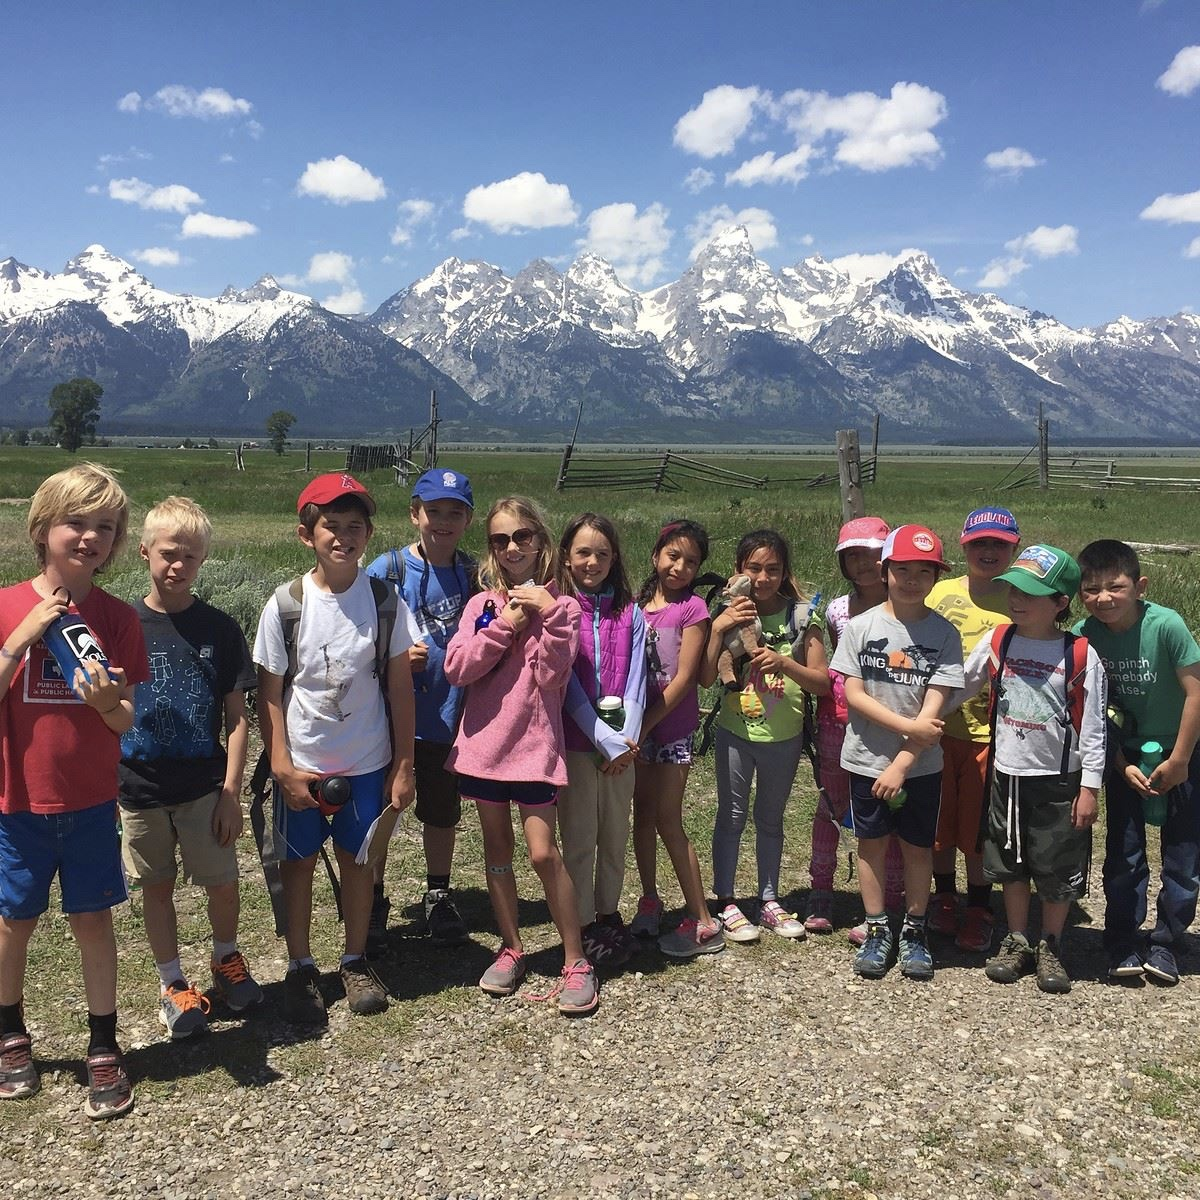 Students at participating camp, Teton Science School's 2017 summer program.